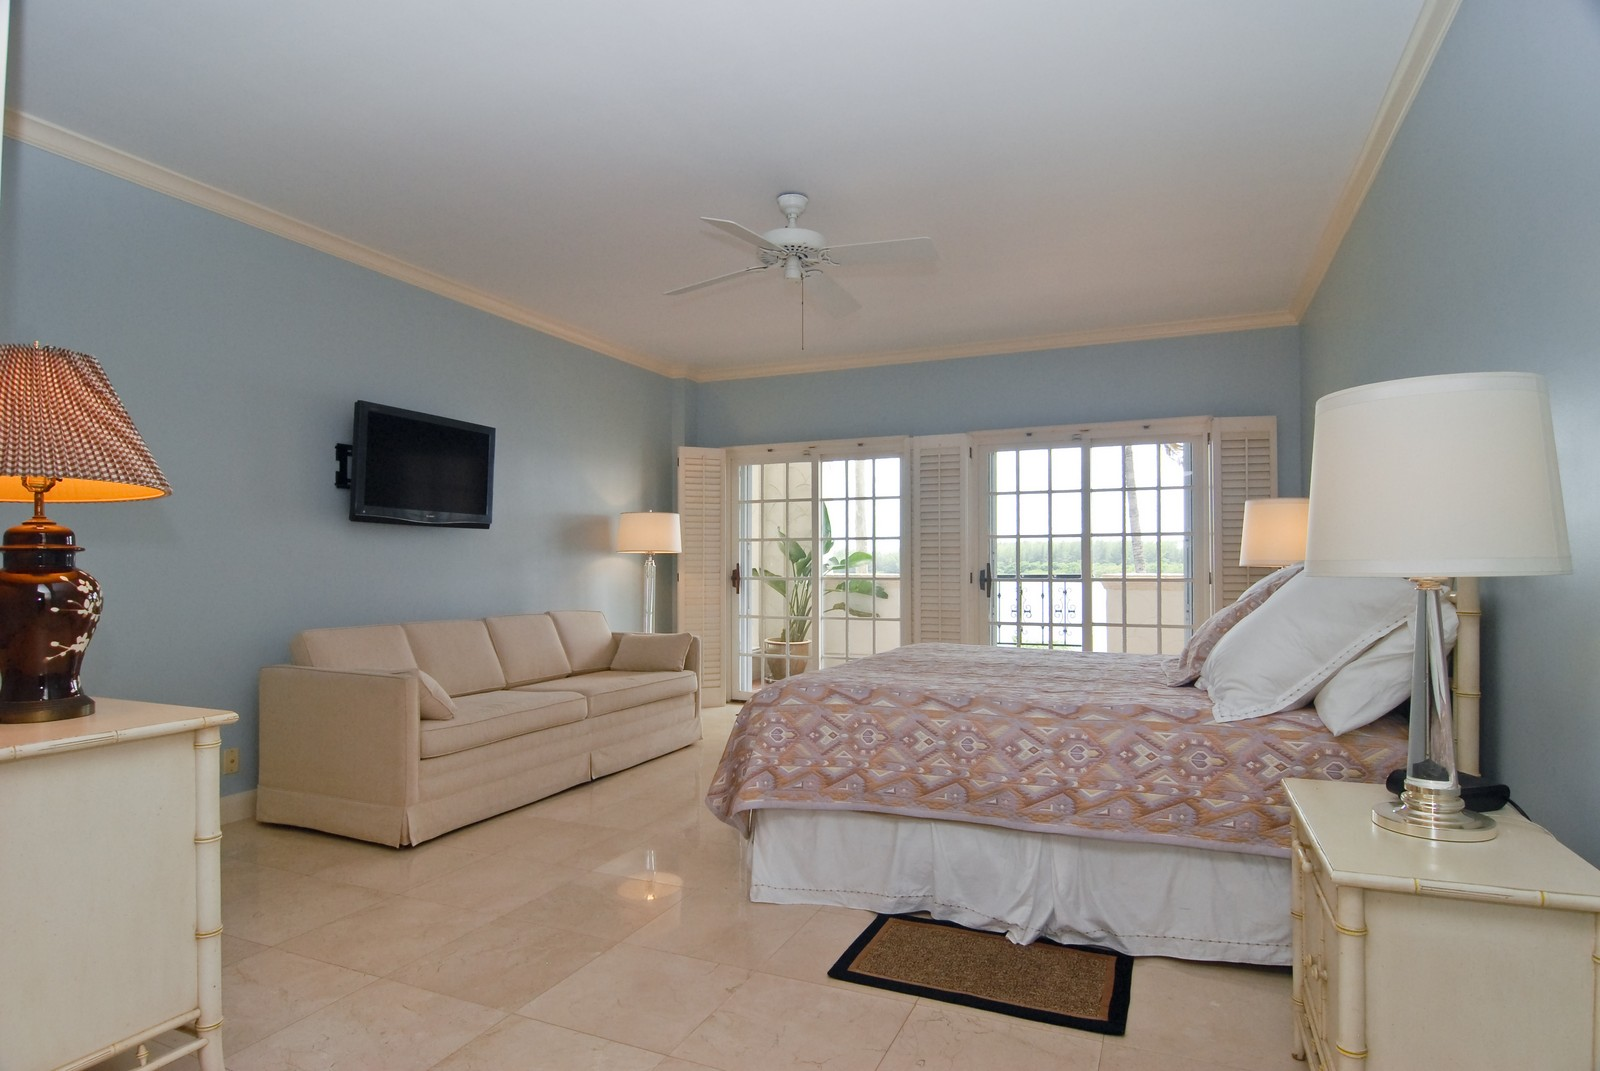 Real Estate Photography - 2426 Fisher Island Dr, Fisher Island, FL, 33109 - Master Bedroom